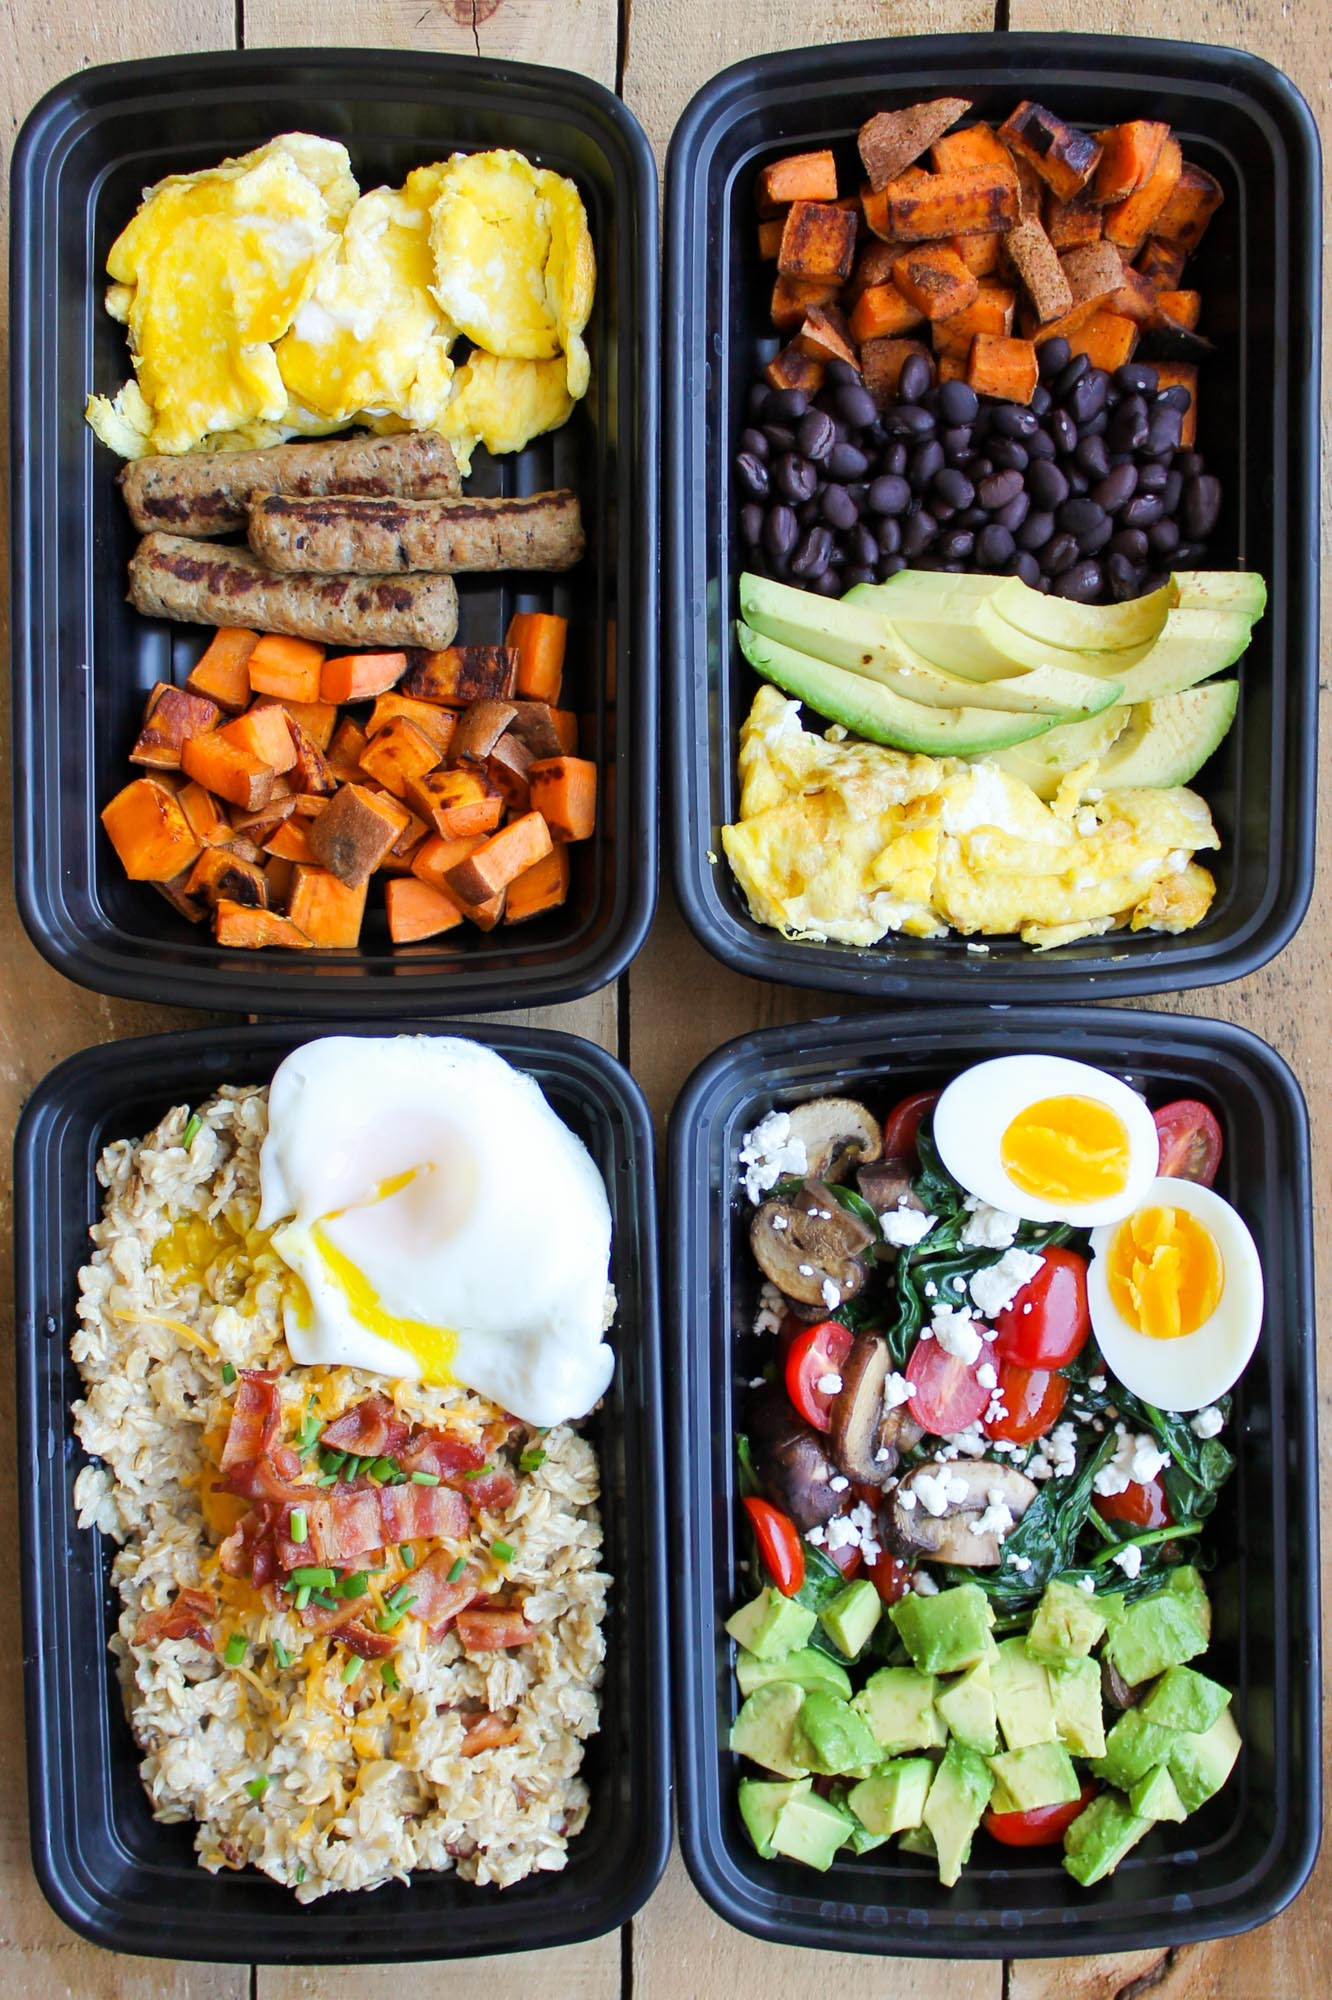 Keto Meal Prep Sunday | All Articles about Ketogenic Diet